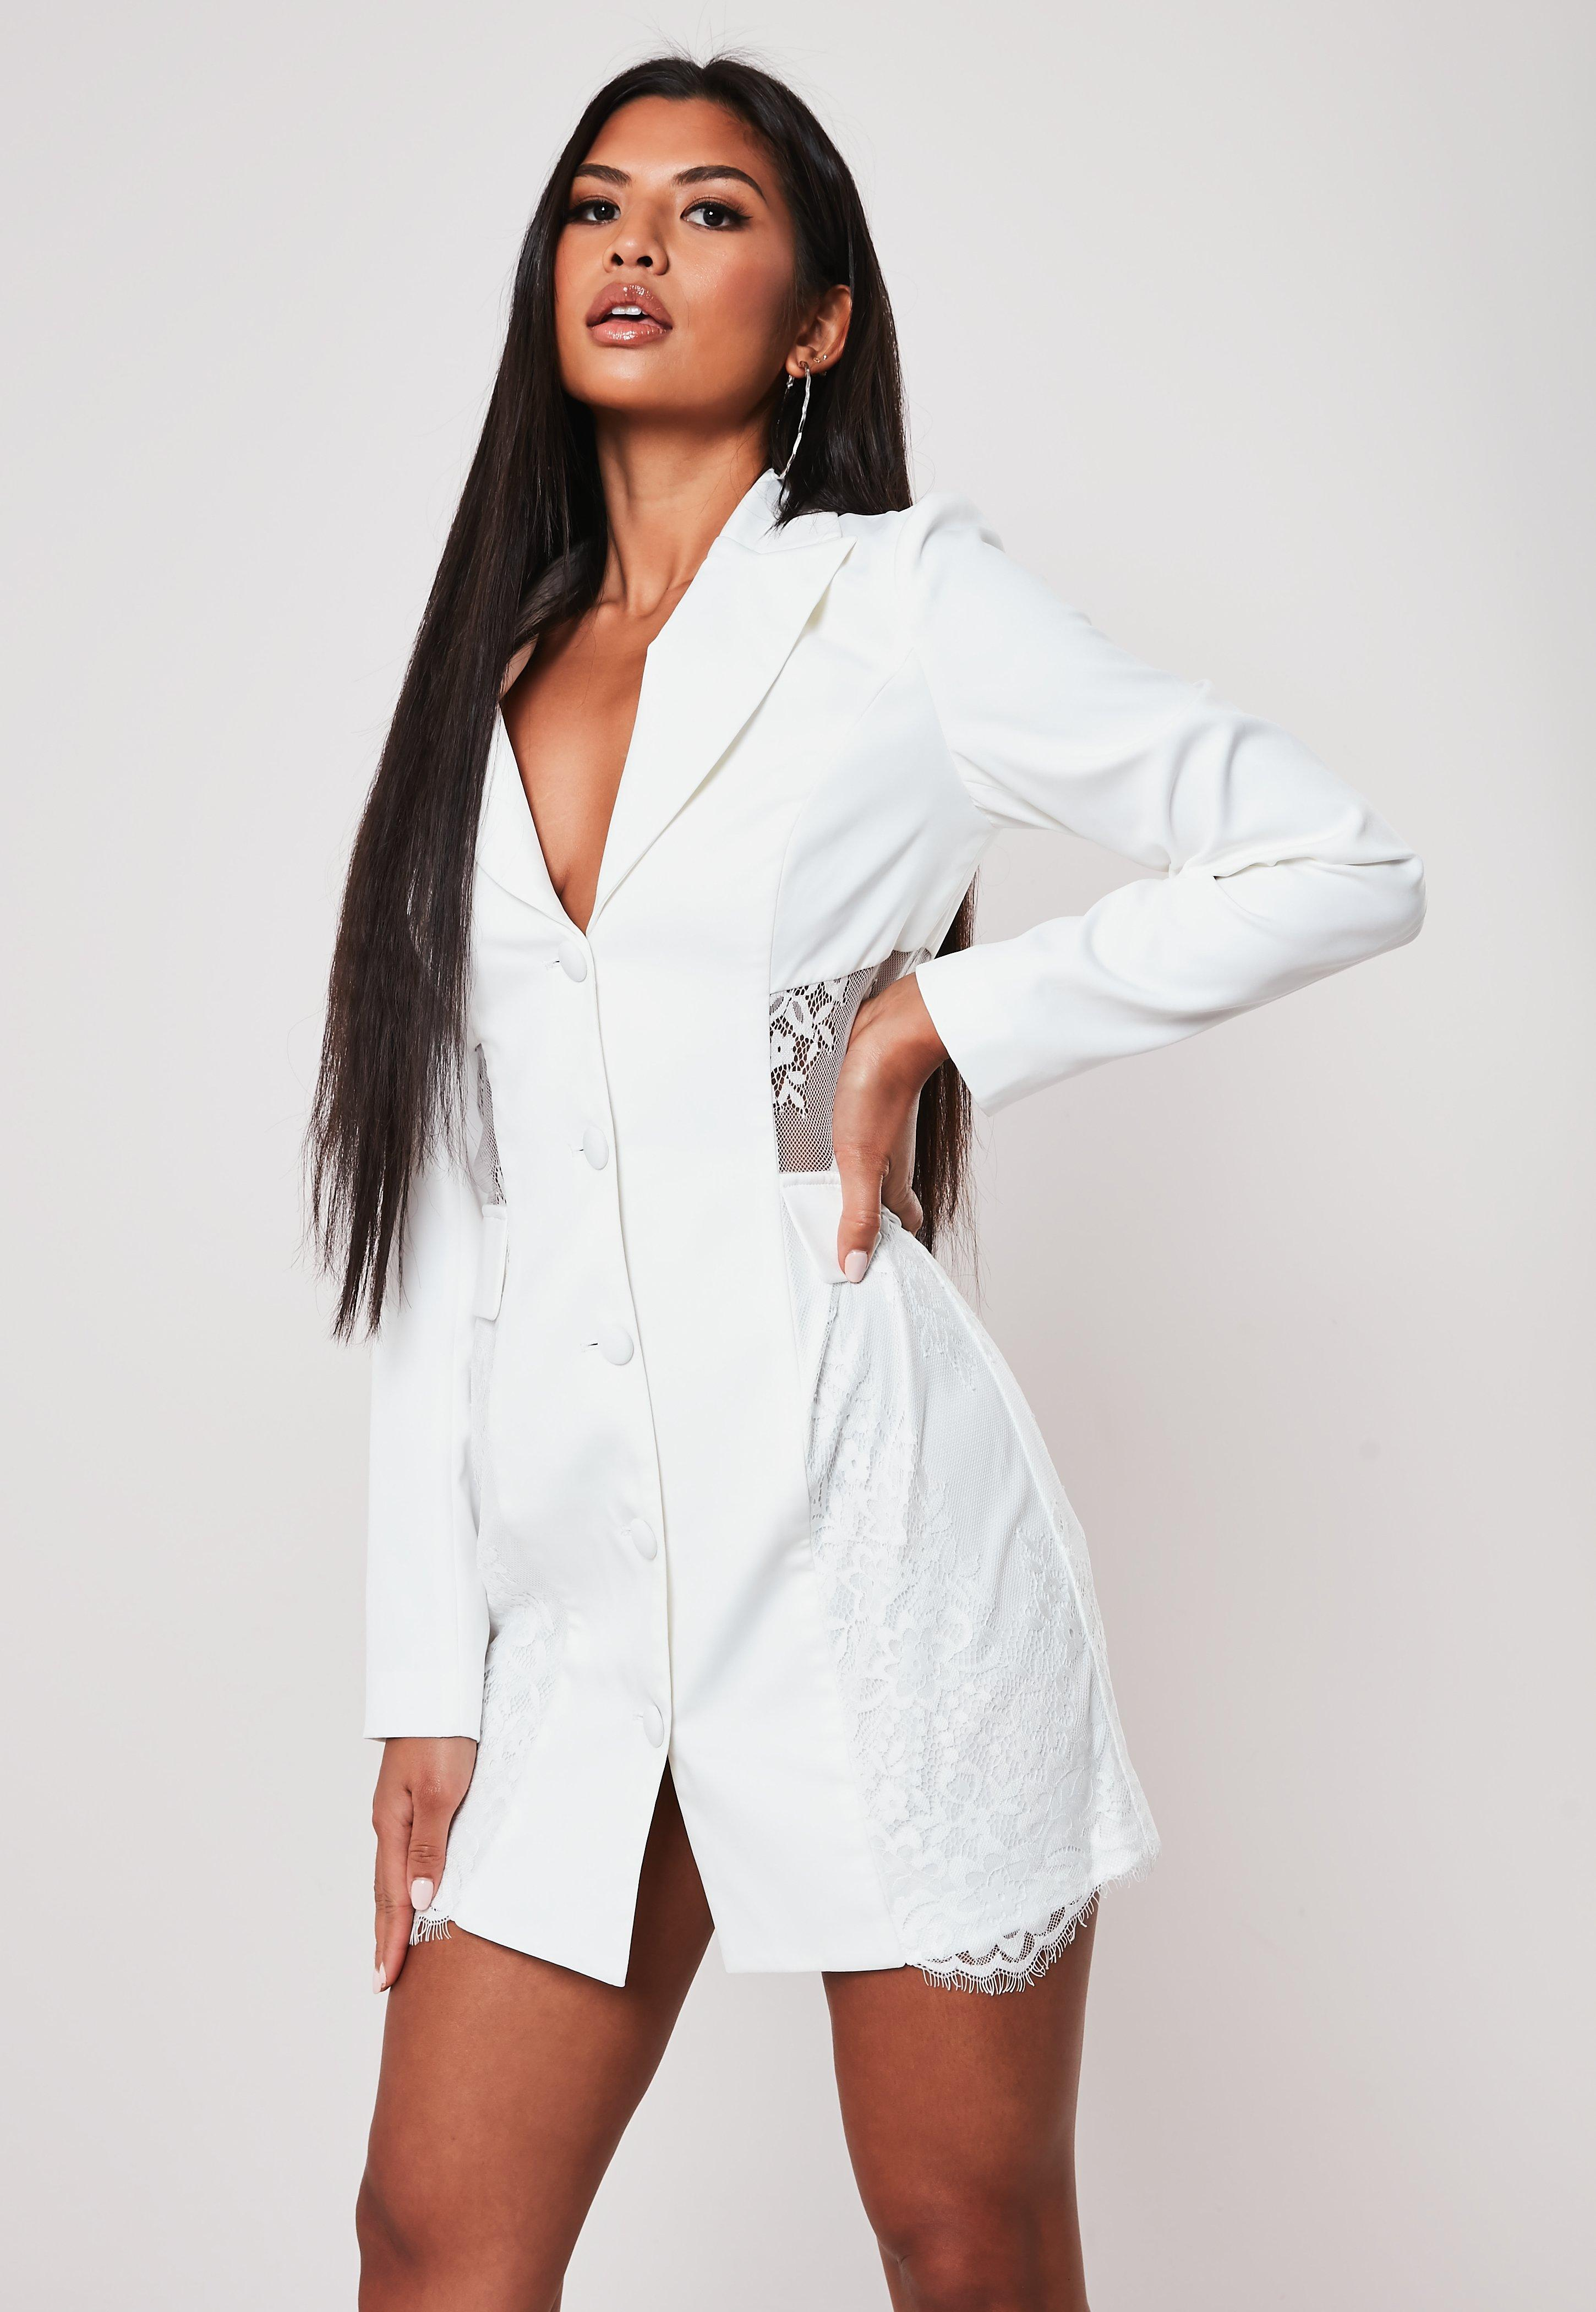 a4facc9c167f Lace Dresses | White, Red & Black Dresses - Missguided